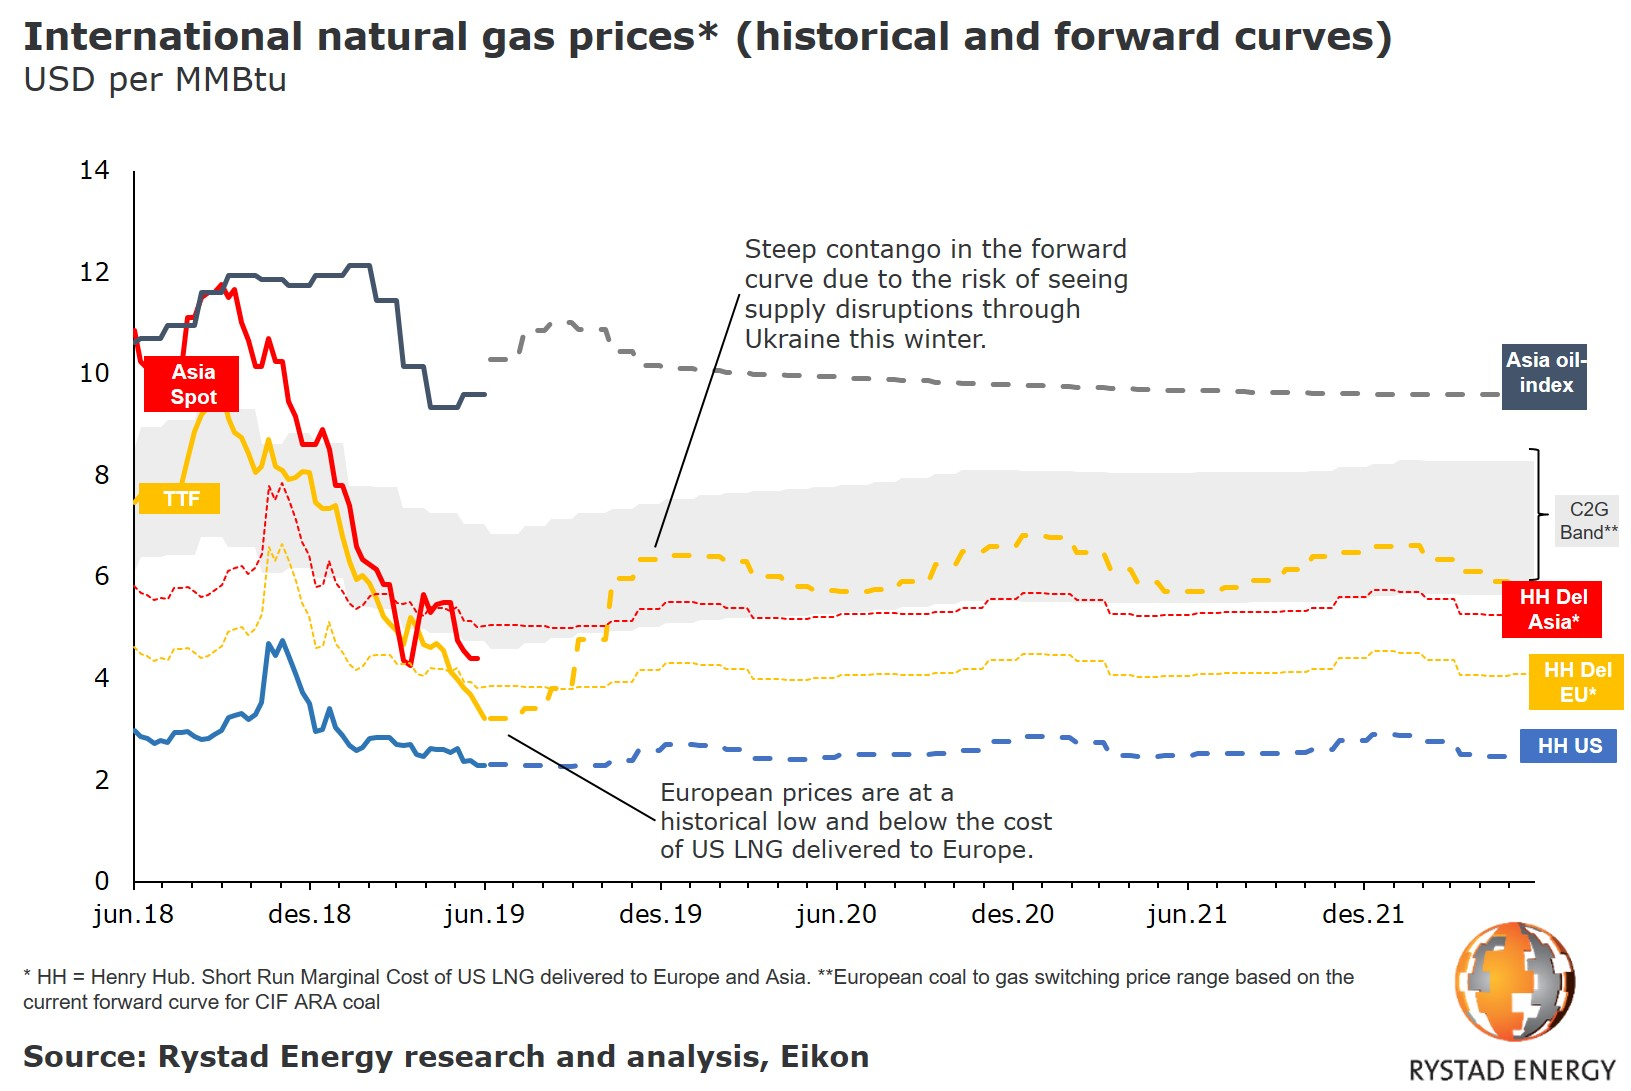 A graph showing international natural gas prices (historical and forward curves) from  June 2018 to December 2021